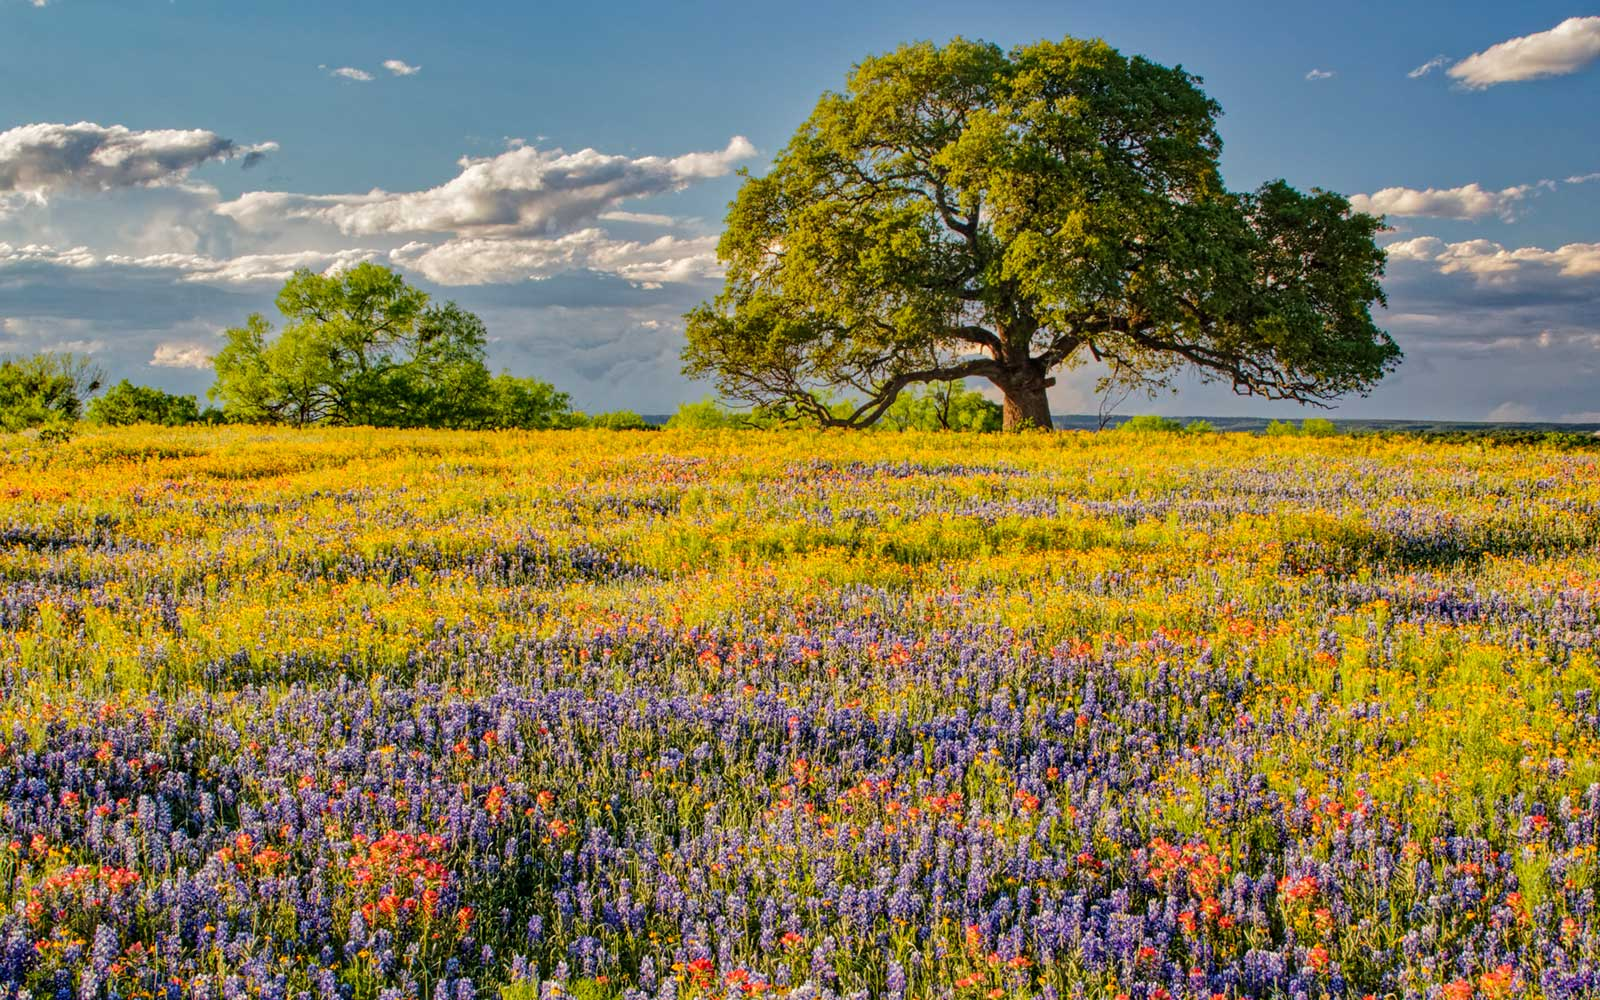 Texas Hill Country, Blue Bonnets and Indian Paintbrush Wildflowers, Spring